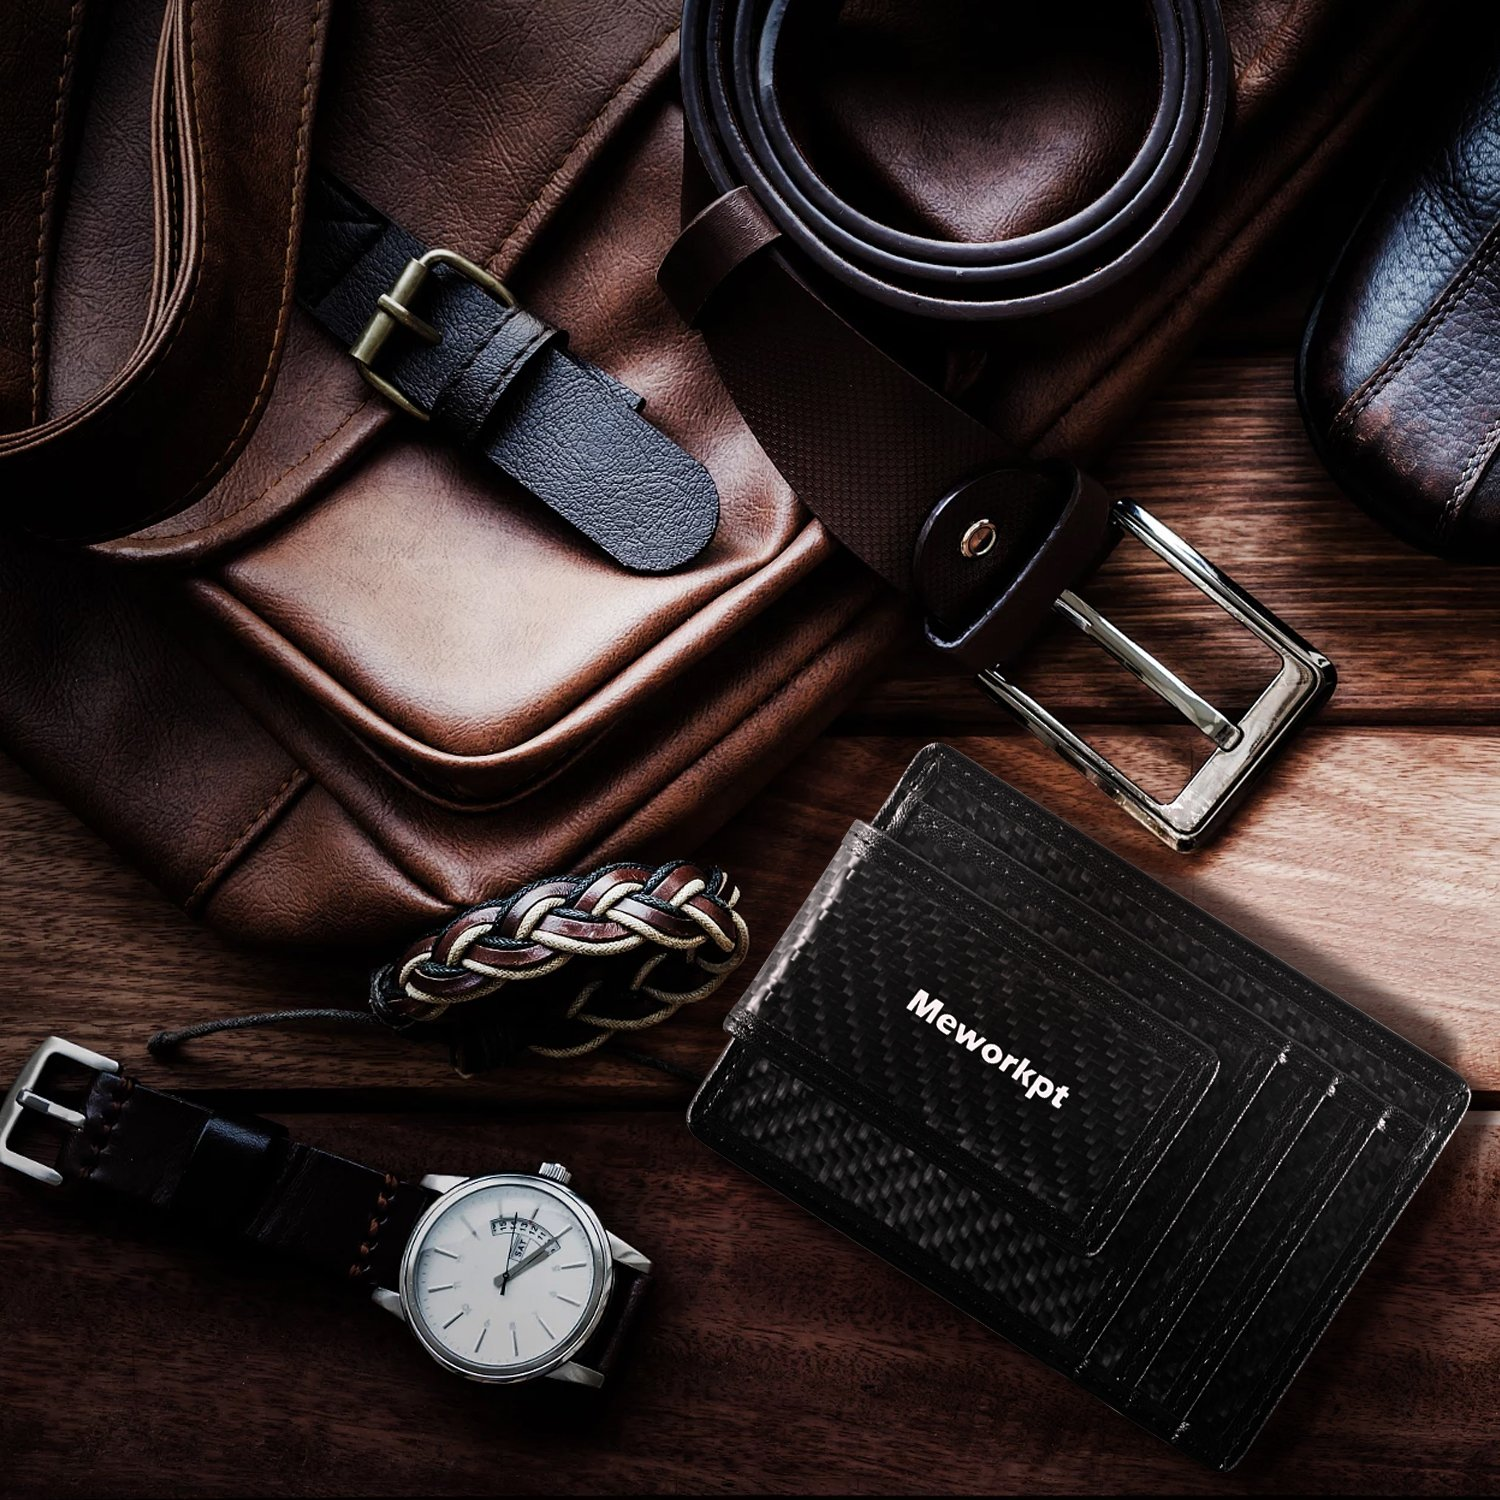 【Gift Box】MeWorkpt Carbon Fiber Front Money Clip Slim Minimalist Wallets with Powerful Magnets Plus RFID Blocking by MeWorkpt (Image #8)